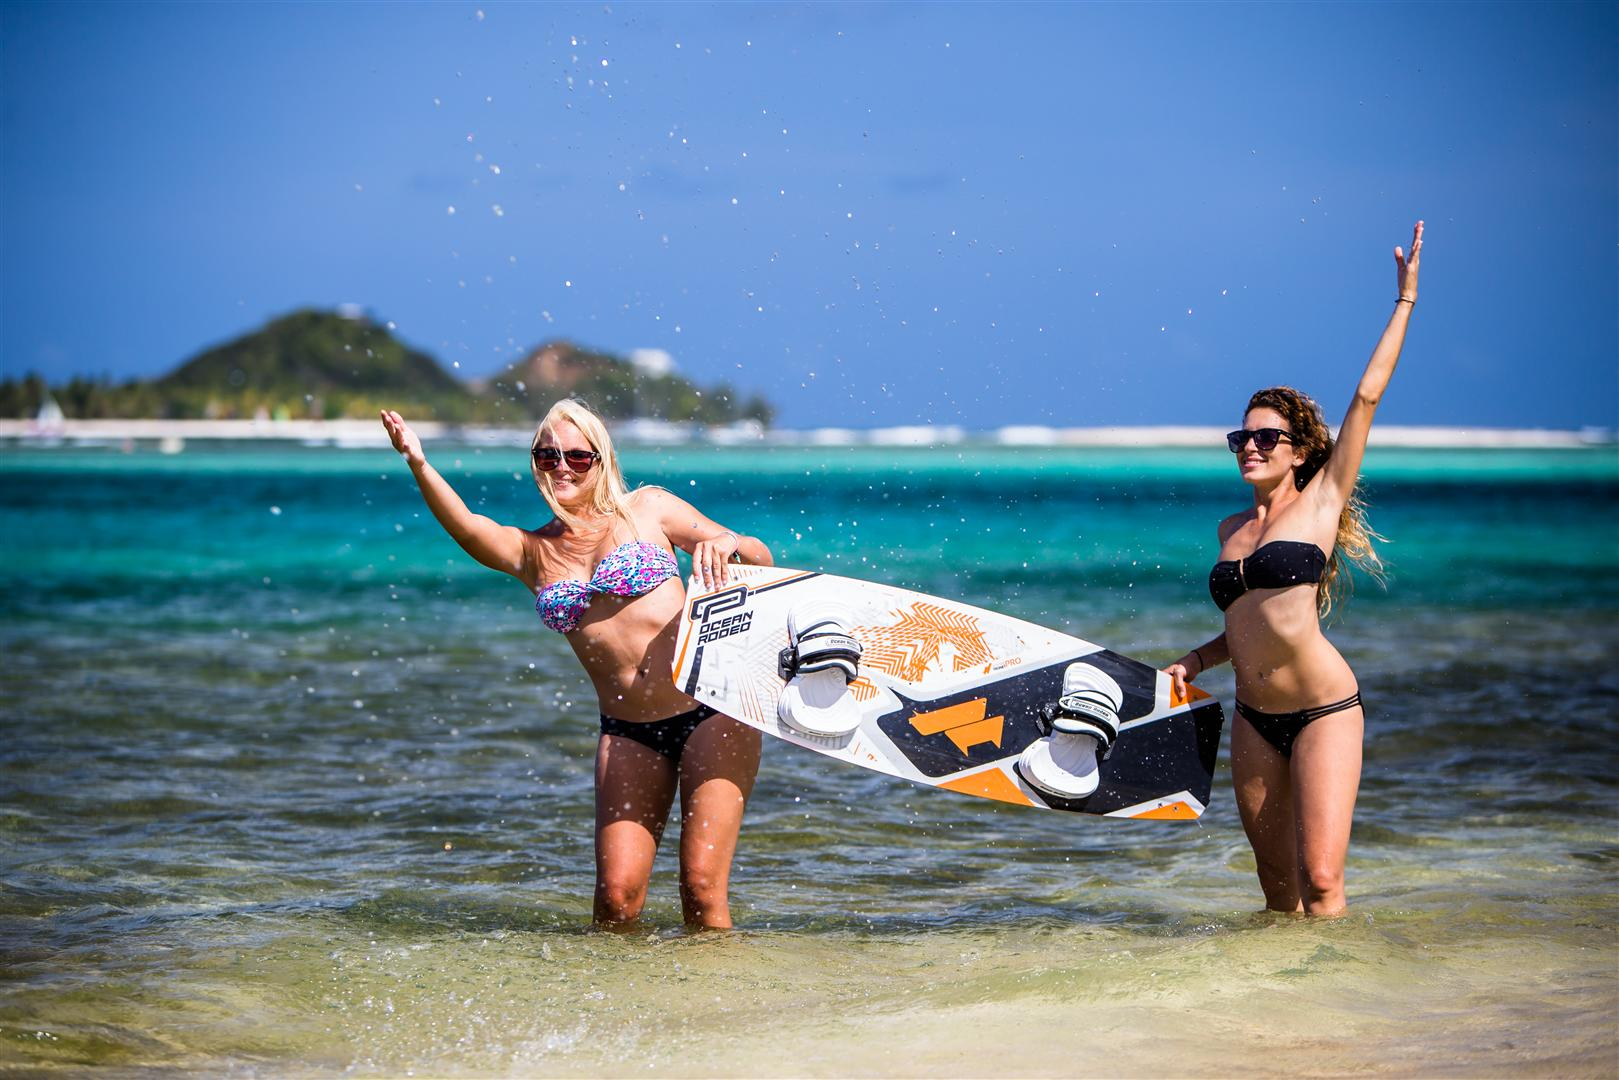 Best 5 Caribbean Kitesurfing Holiday Destinations